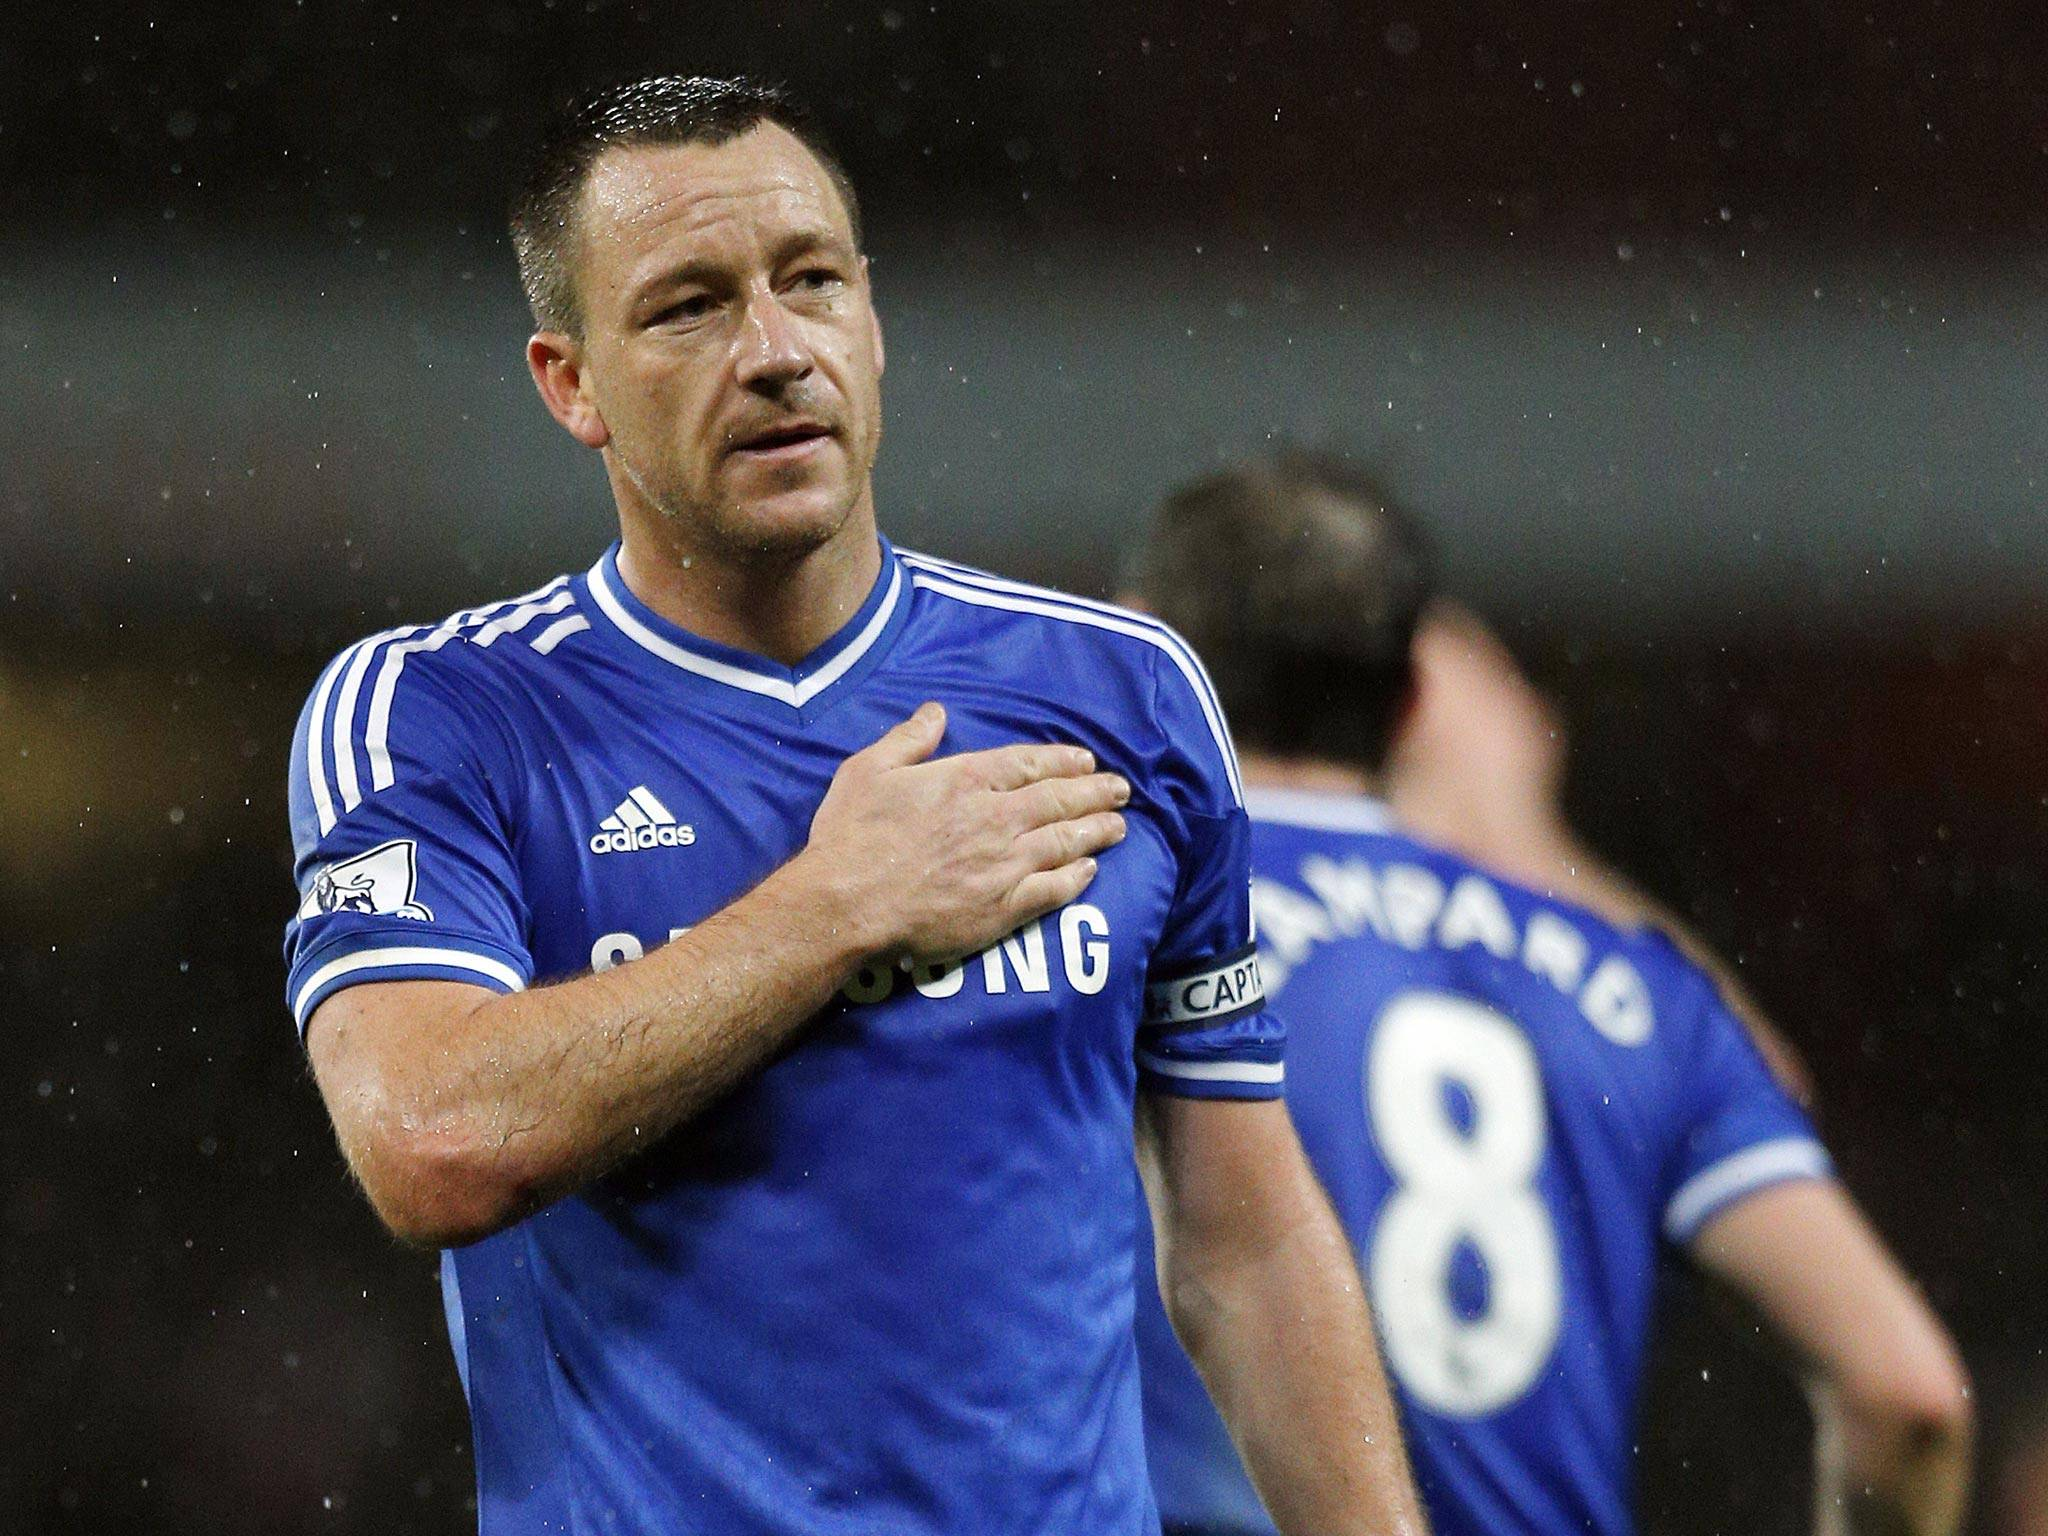 john terry's heart belongs to chelsea 2016 images